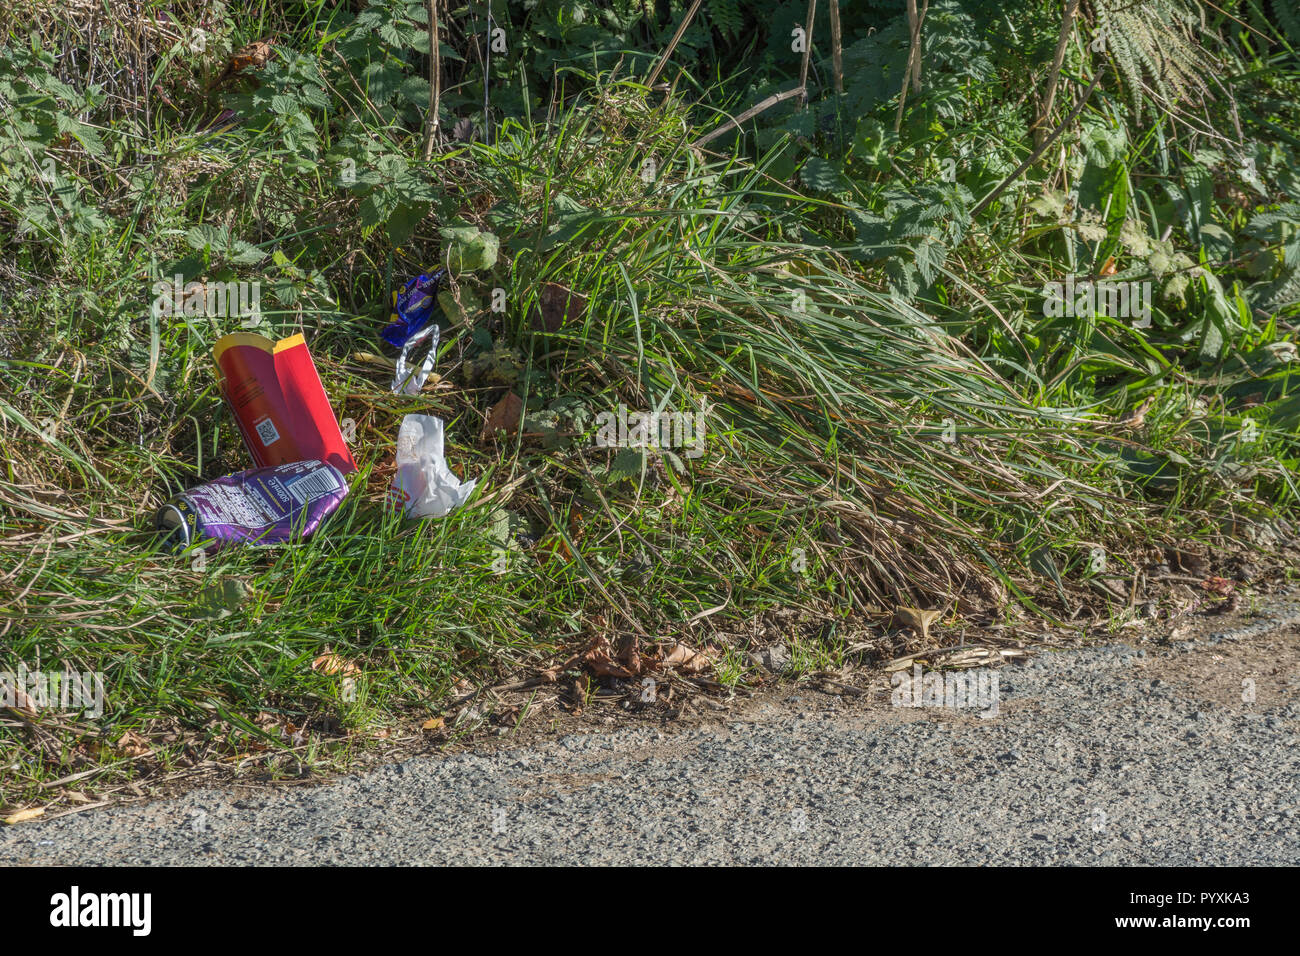 Stretch of litter-strewn country lane. Concept roadside litter UK. Keep Britain tidy, plastic waste in road. Stock Photo